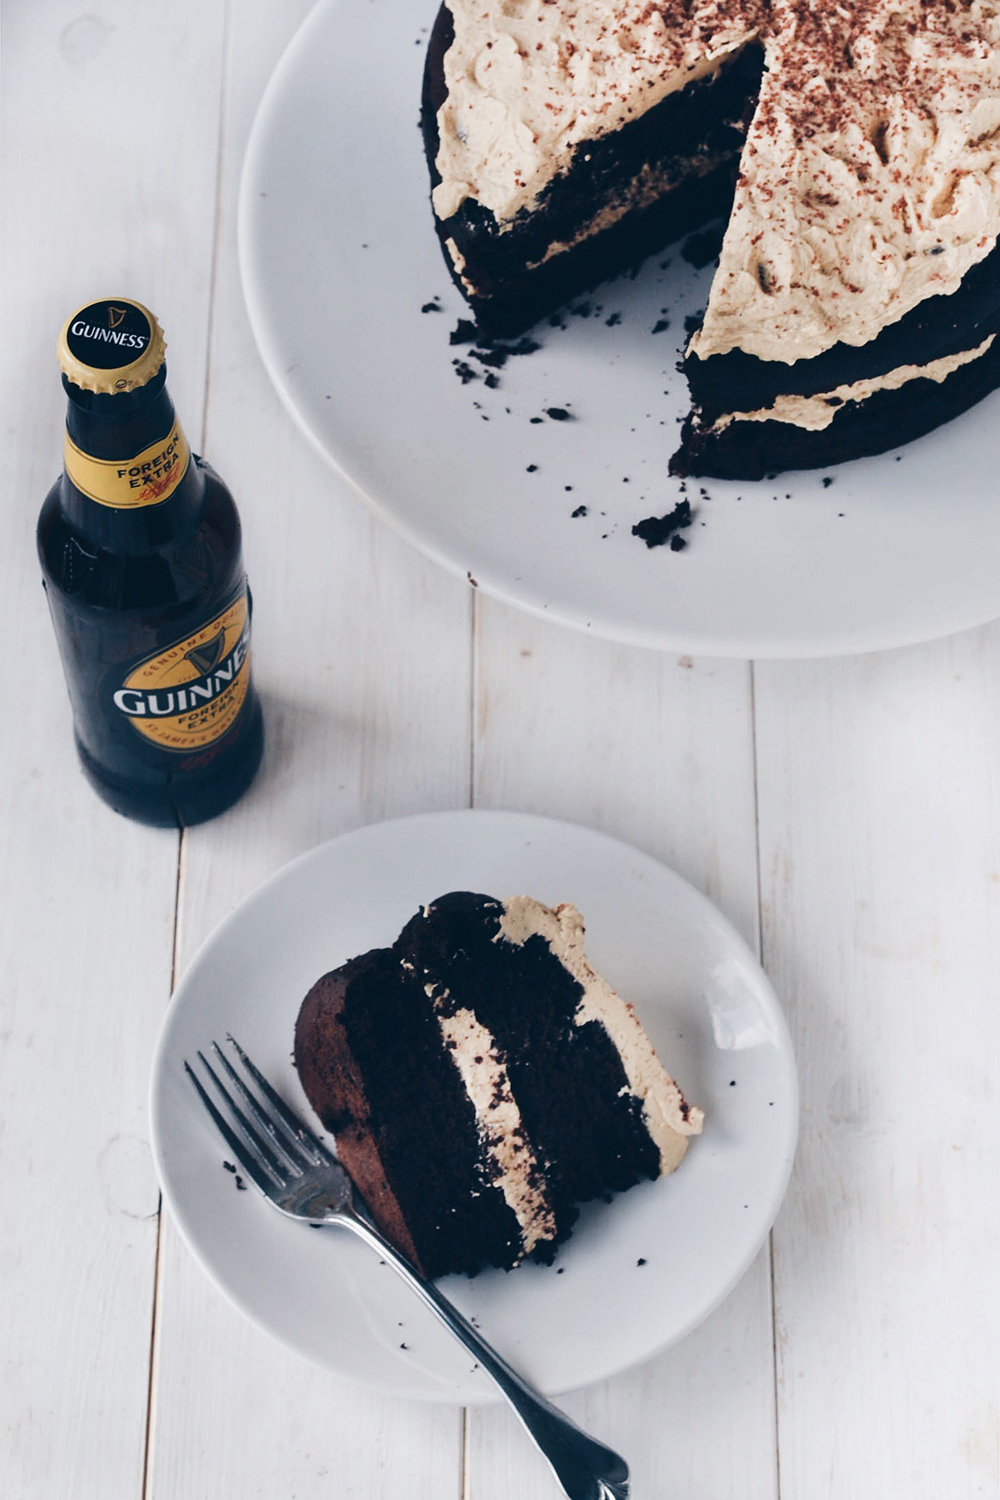 Guinness Chocolate Cake with Irish Cream Frosting | Wallflower Kitchen - Pinterest Picks - 8 Sweet Guinness Recipes for St. Patricks Day